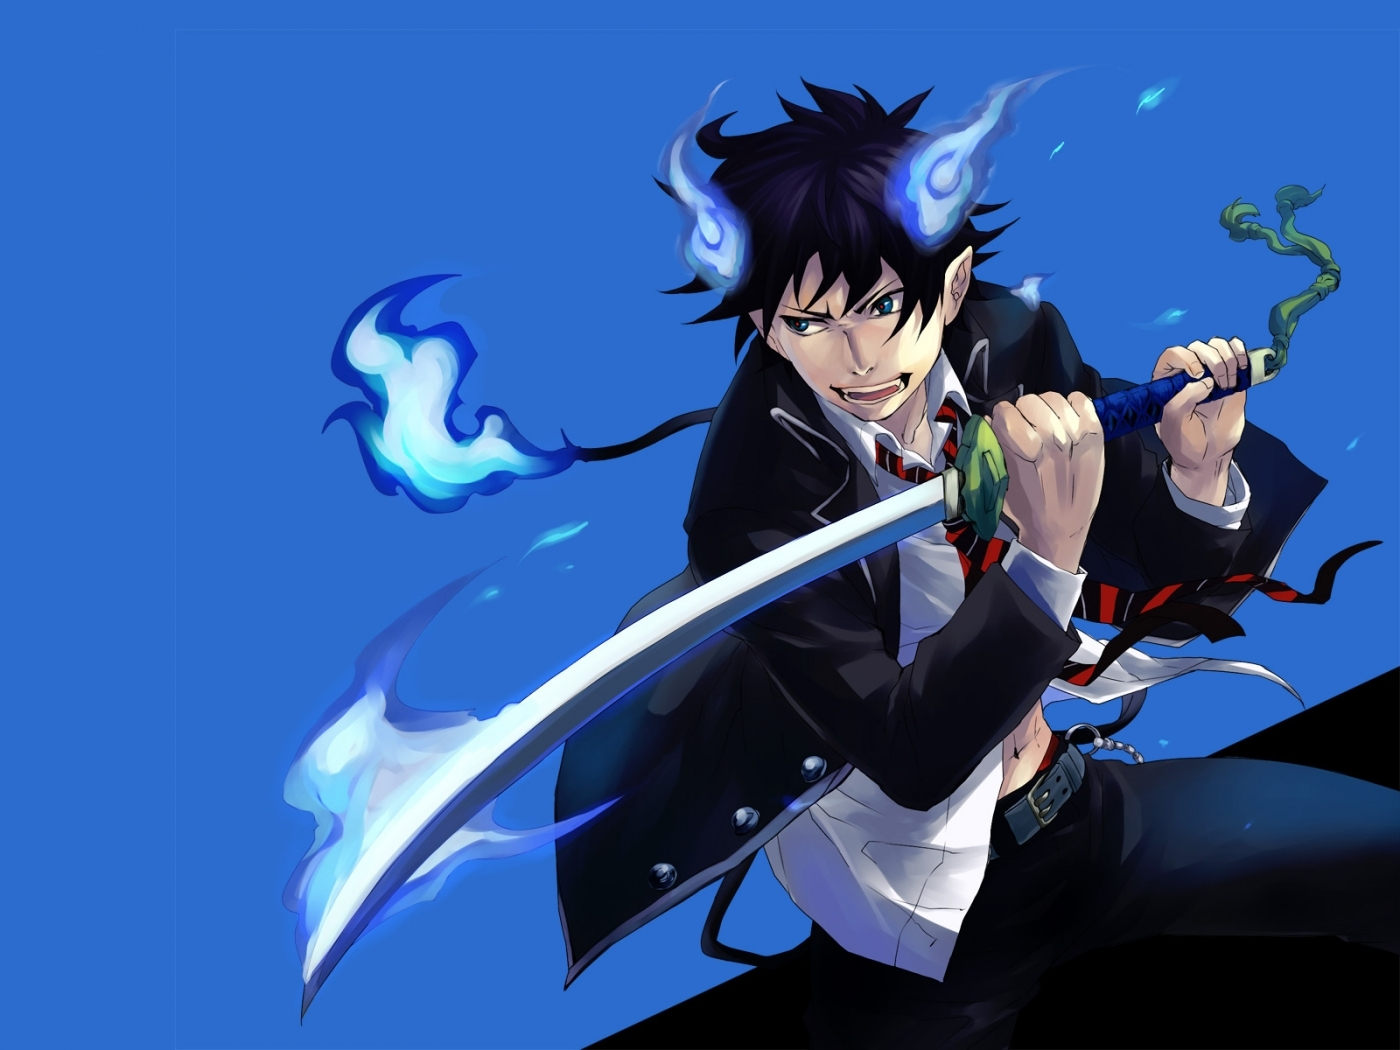 30198 download wallpaper Anime, Men screensavers and pictures for free